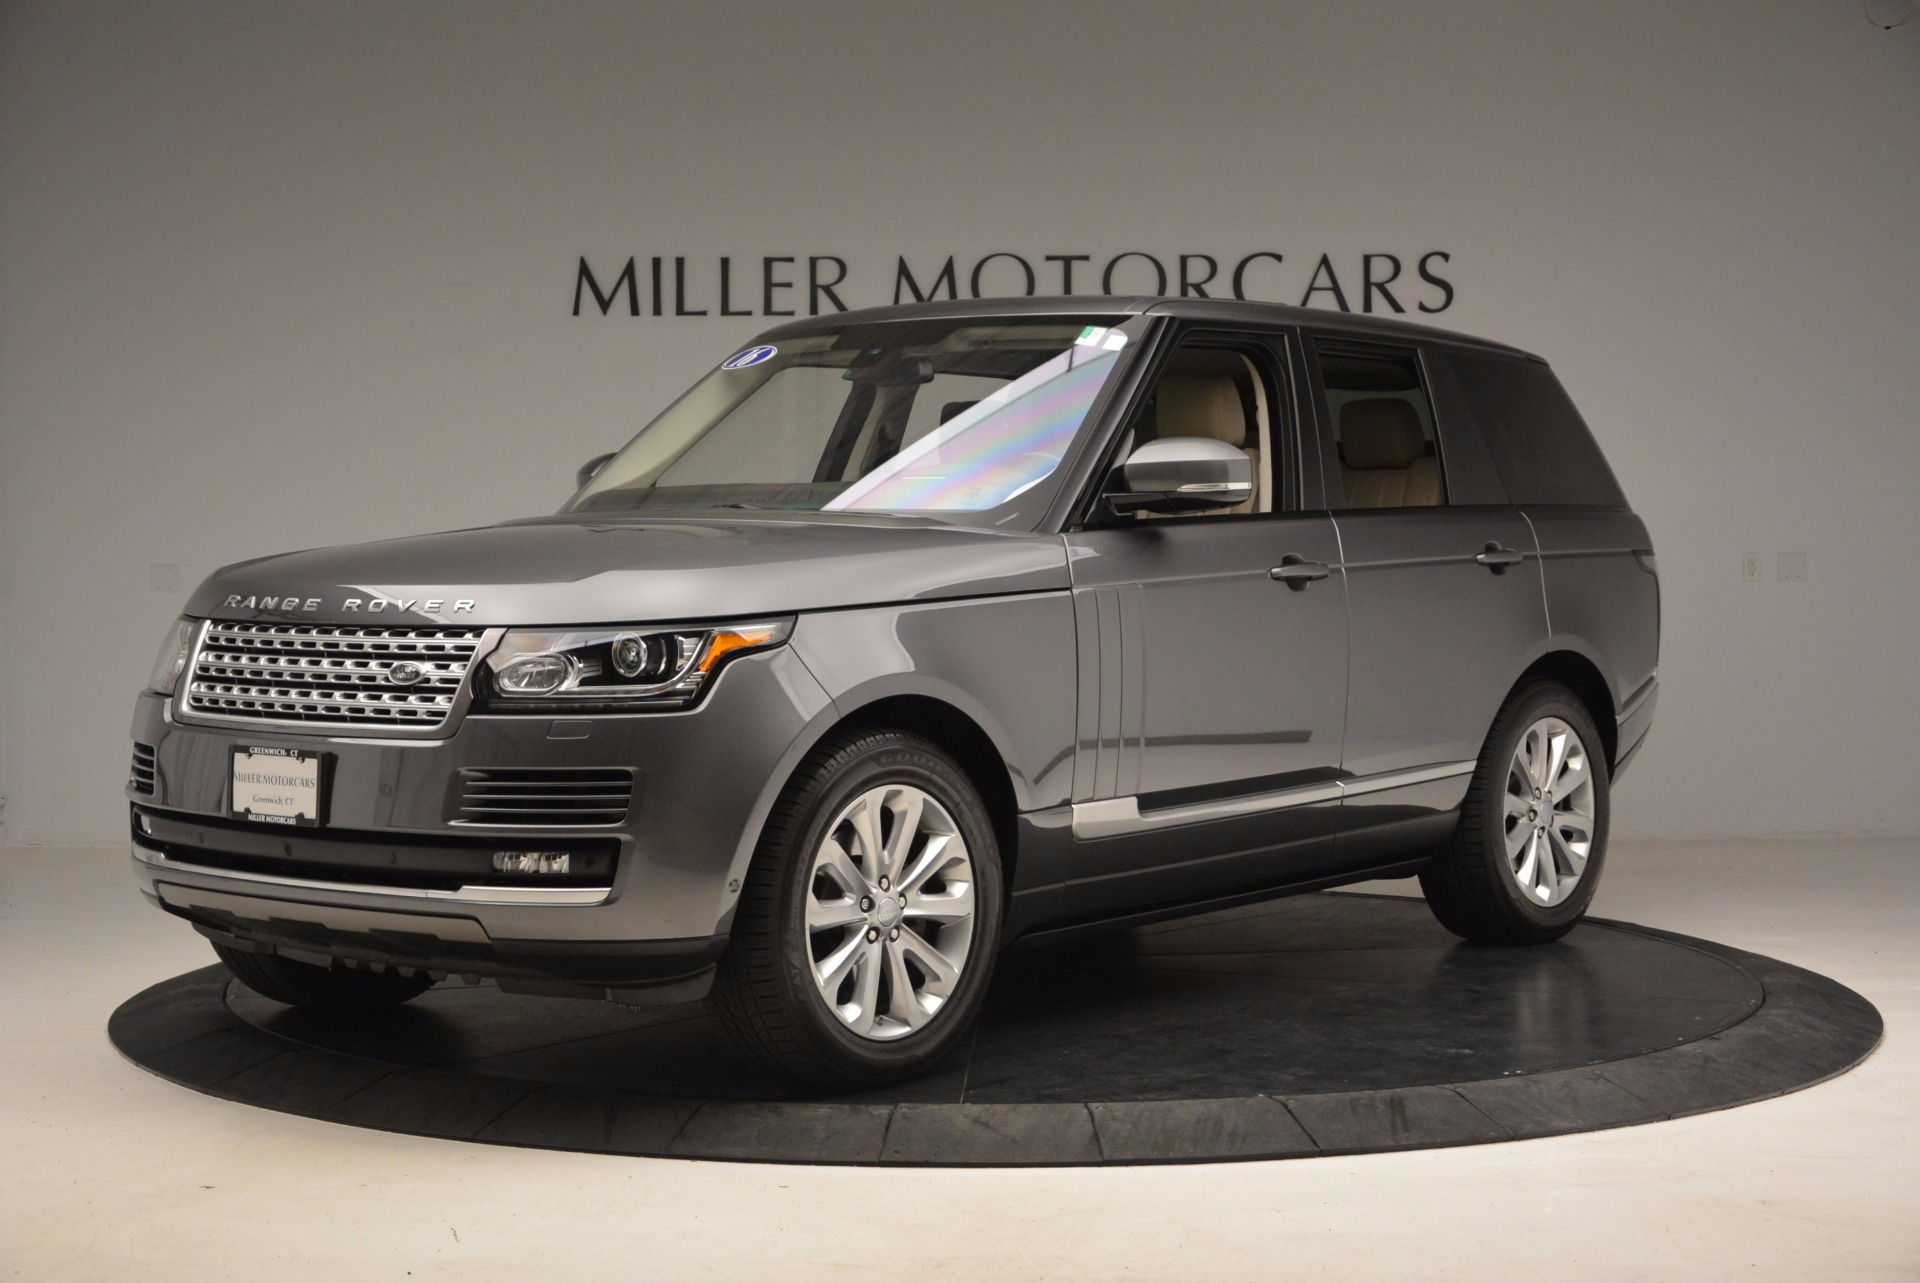 Used 2016 Land Rover Range Rover HSE TD6 For Sale In Greenwich, CT. Alfa Romeo of Greenwich, 7166 999_p2